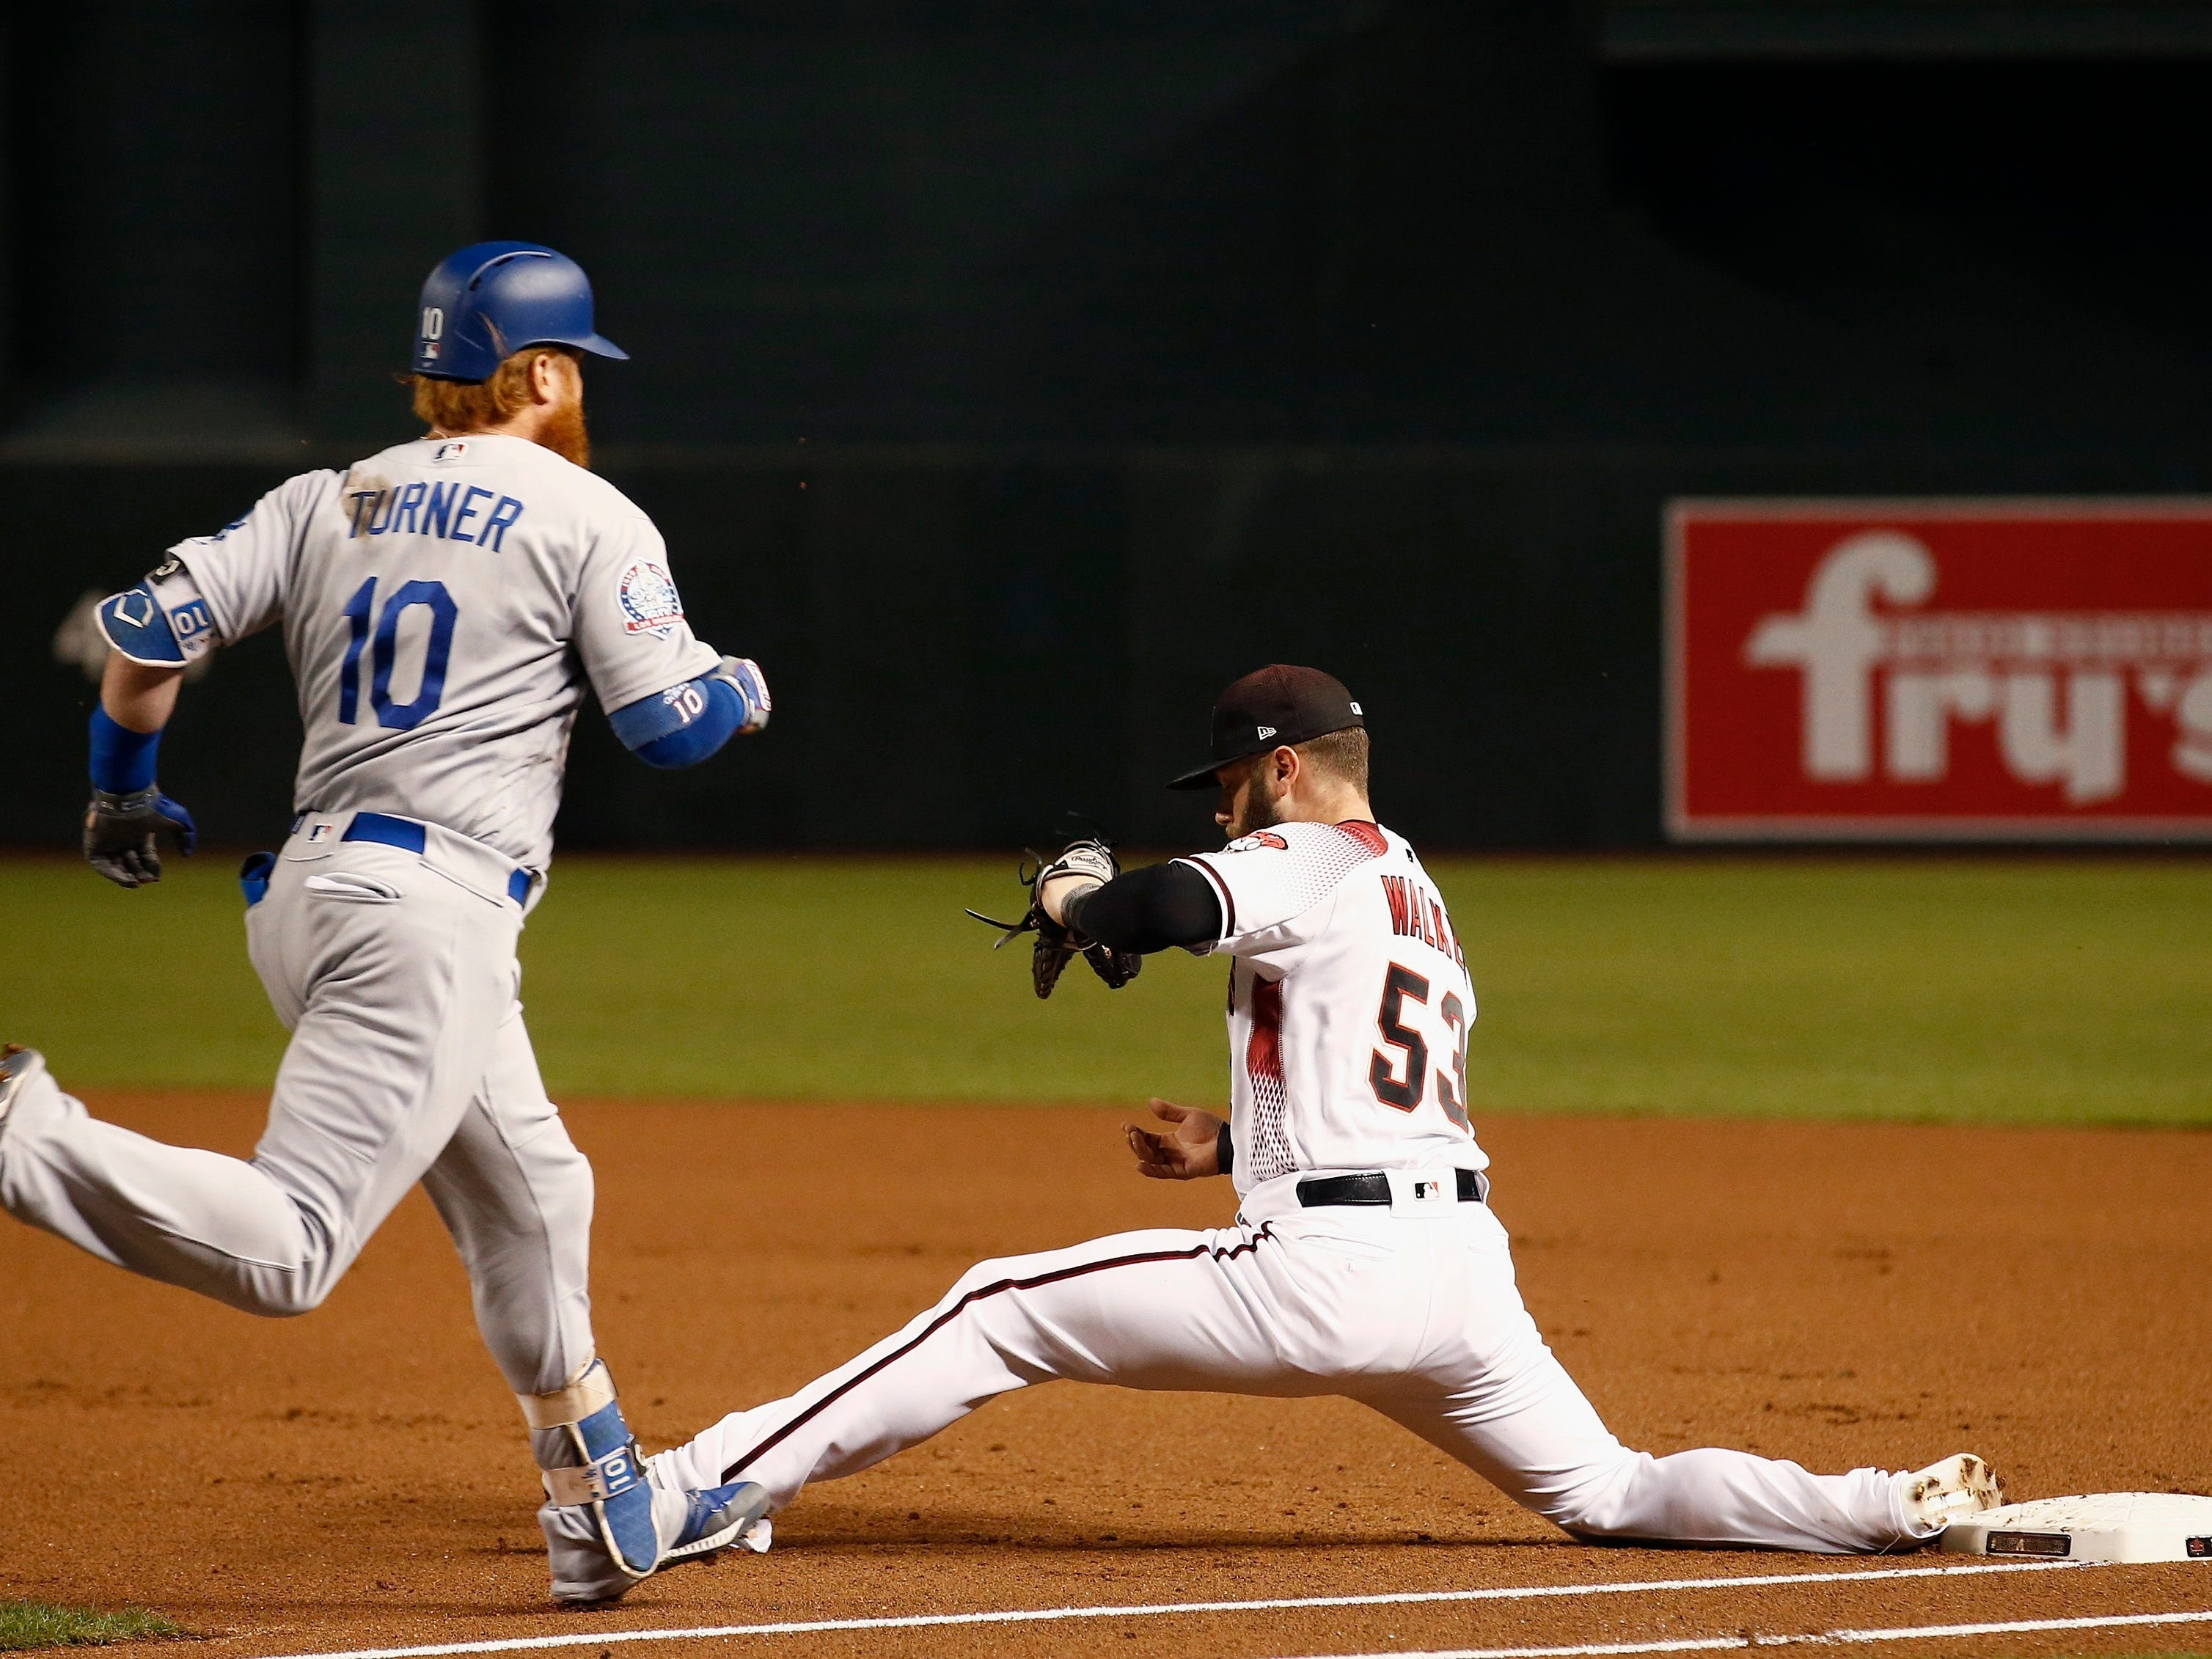 Arizona Diamondbacks first baseman Christian Walker (53) scoops up a low throw to get out Los Angeles Dodgers' Justin Turner (10) at first during the first inning of a baseball game, Monday, Sept. 24, 2018, in Phoenix. (AP Photo/Ross D. Franklin)